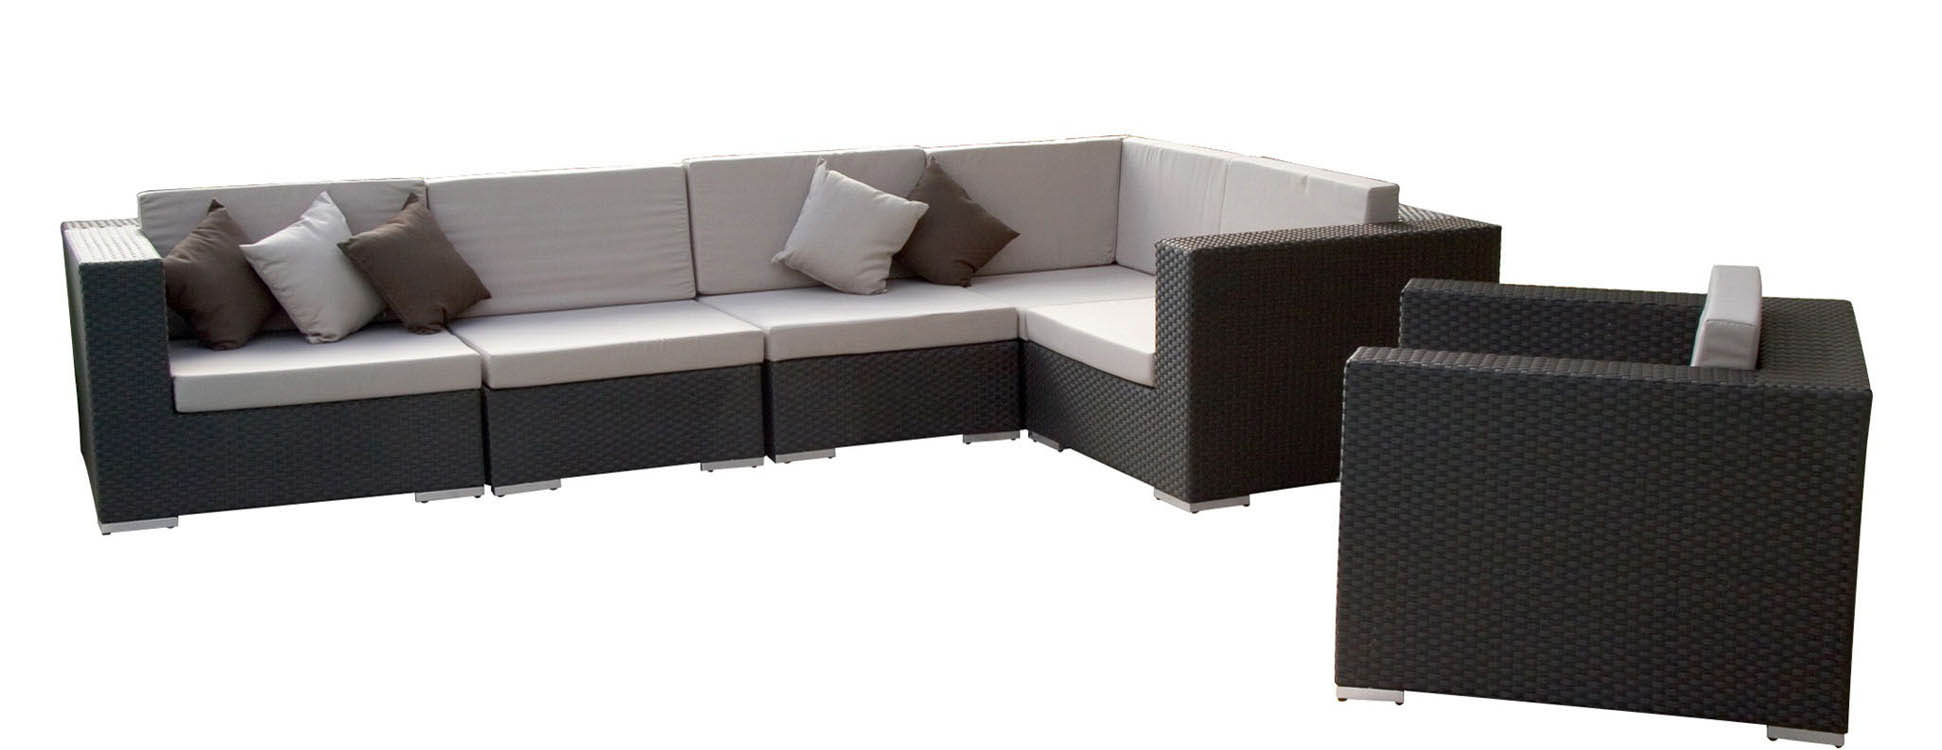 venice-sectional